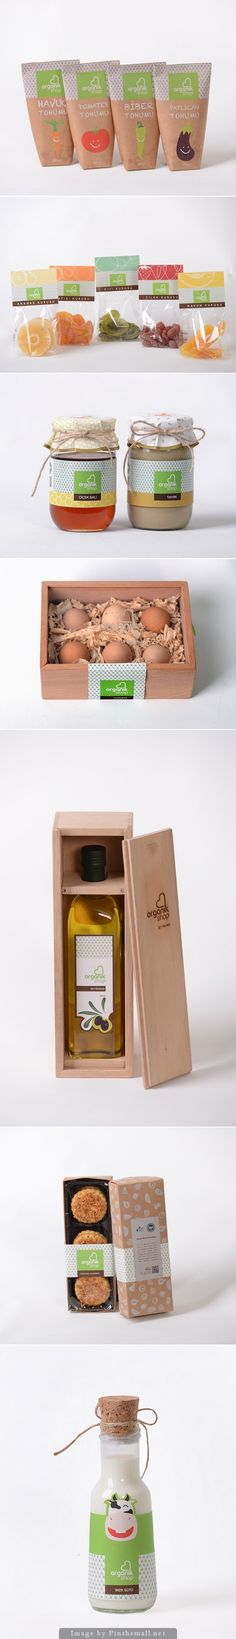 organic shop - food packaging